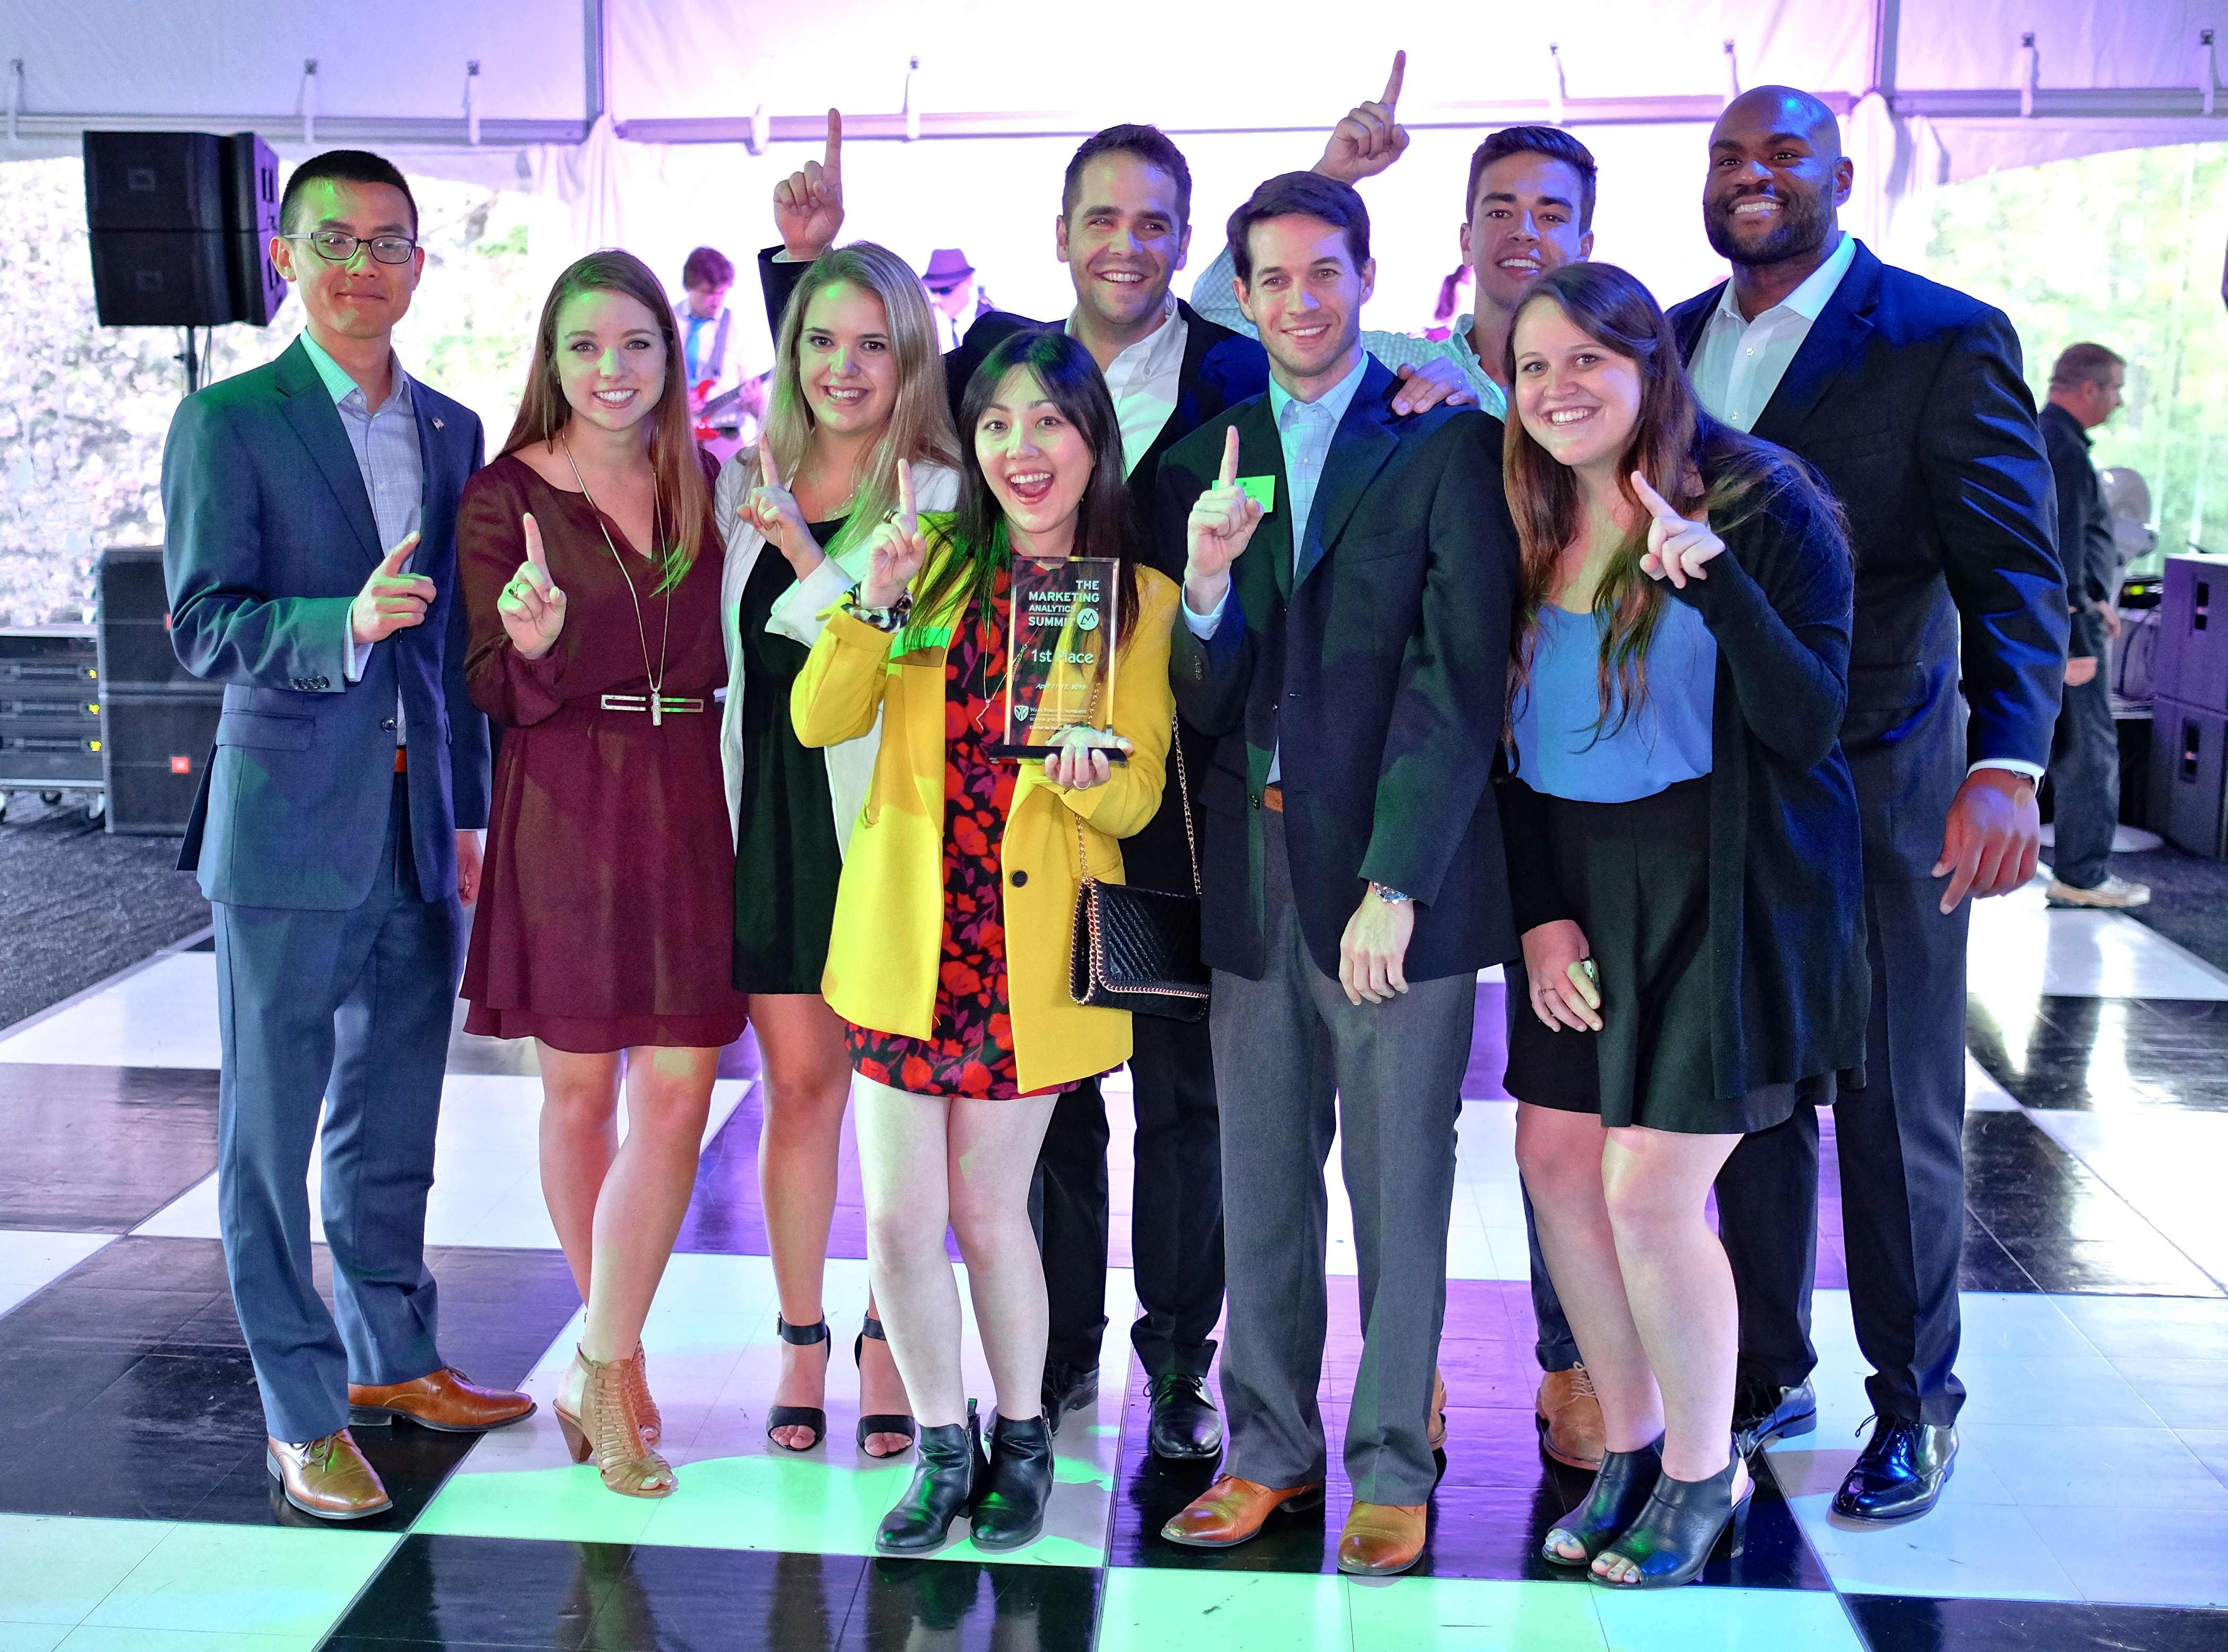 The 2016 Marketing Analytics Summit / Inmar Analytics Forum held their Graduate Level Final Competititon Awards at the Graylyn Estate in Winston-Salem.